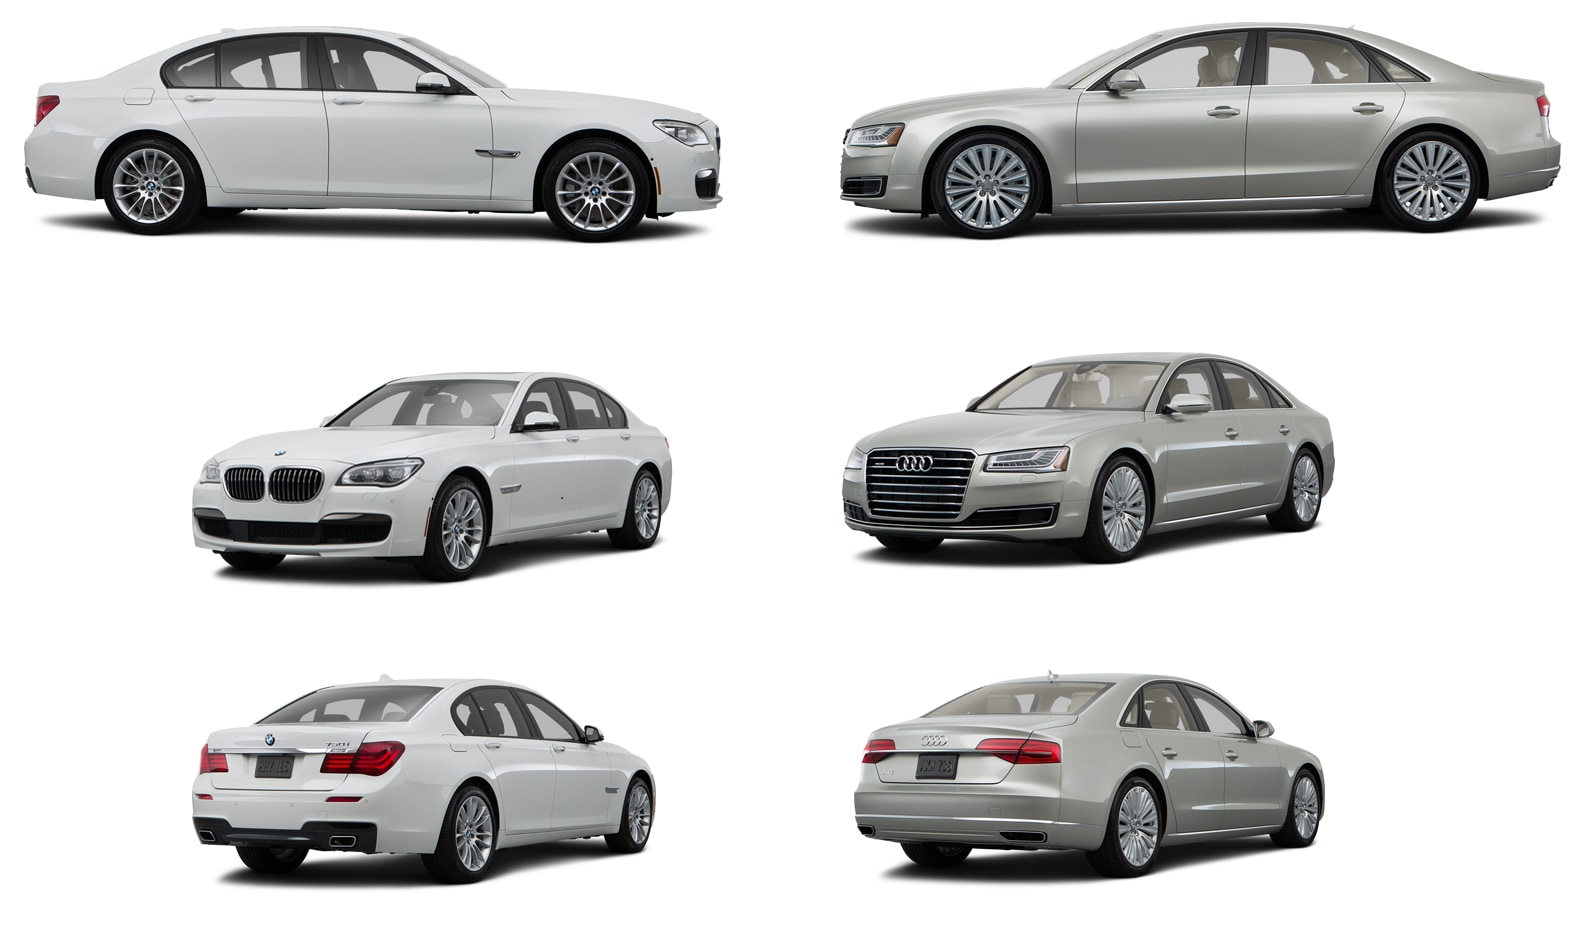 audi a8 vs bmw 7 series in huntsville compare high end luxury cars. Black Bedroom Furniture Sets. Home Design Ideas